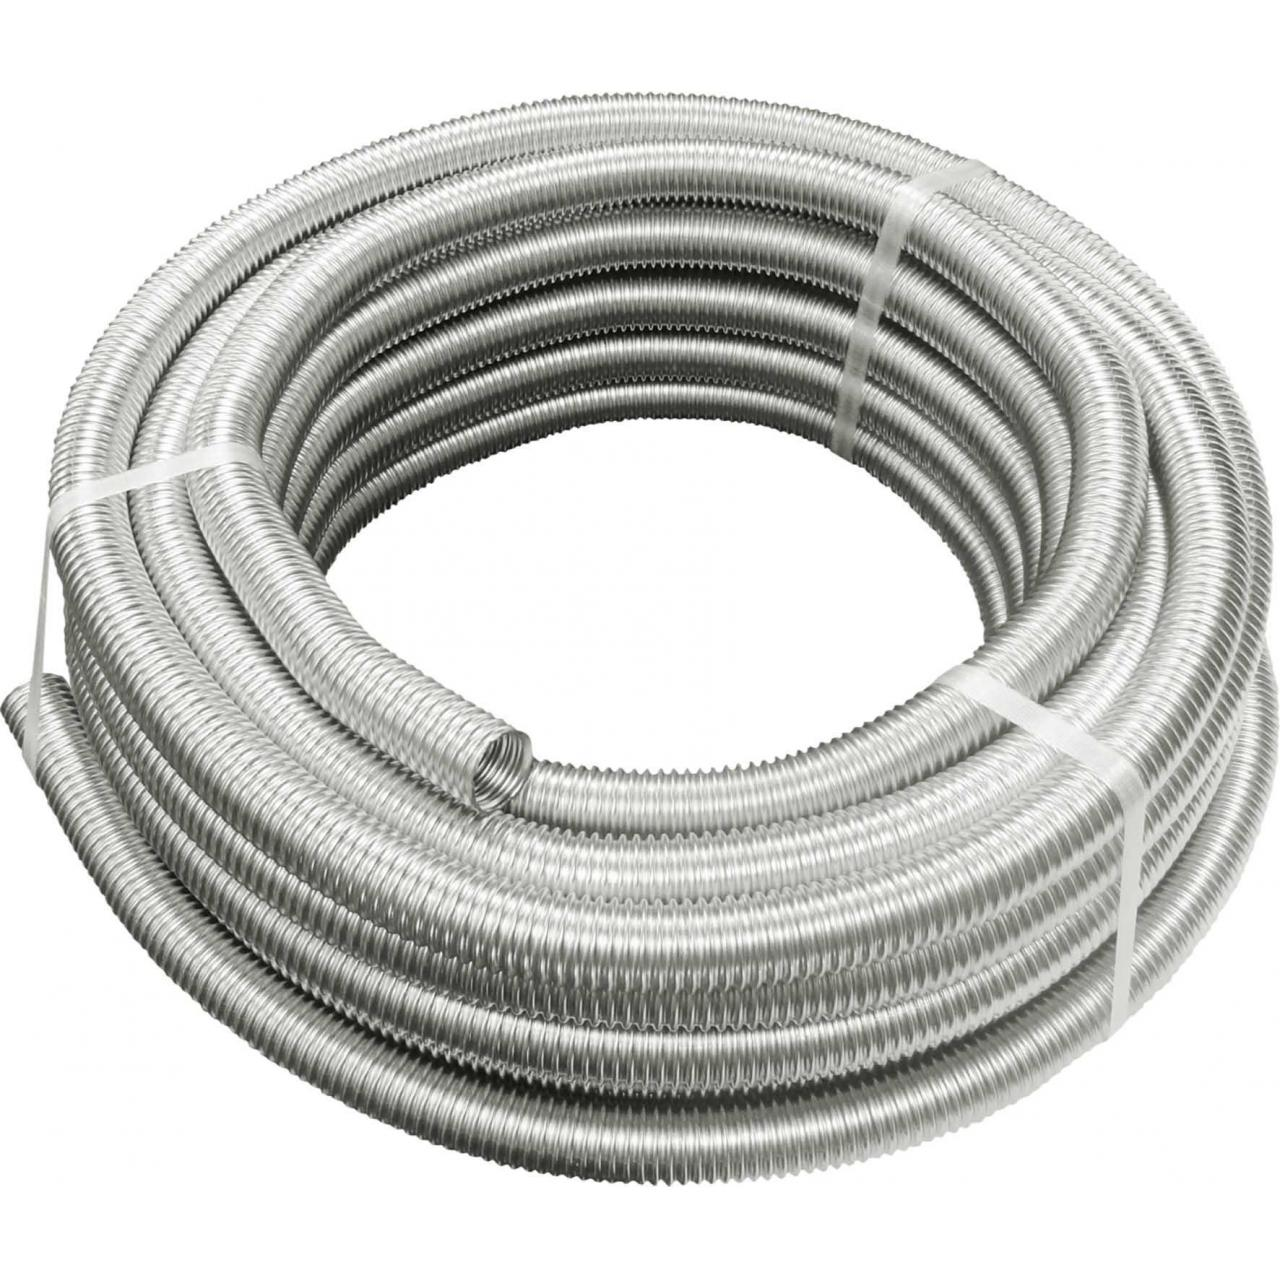 Accessories Stainless steel pipes J122000